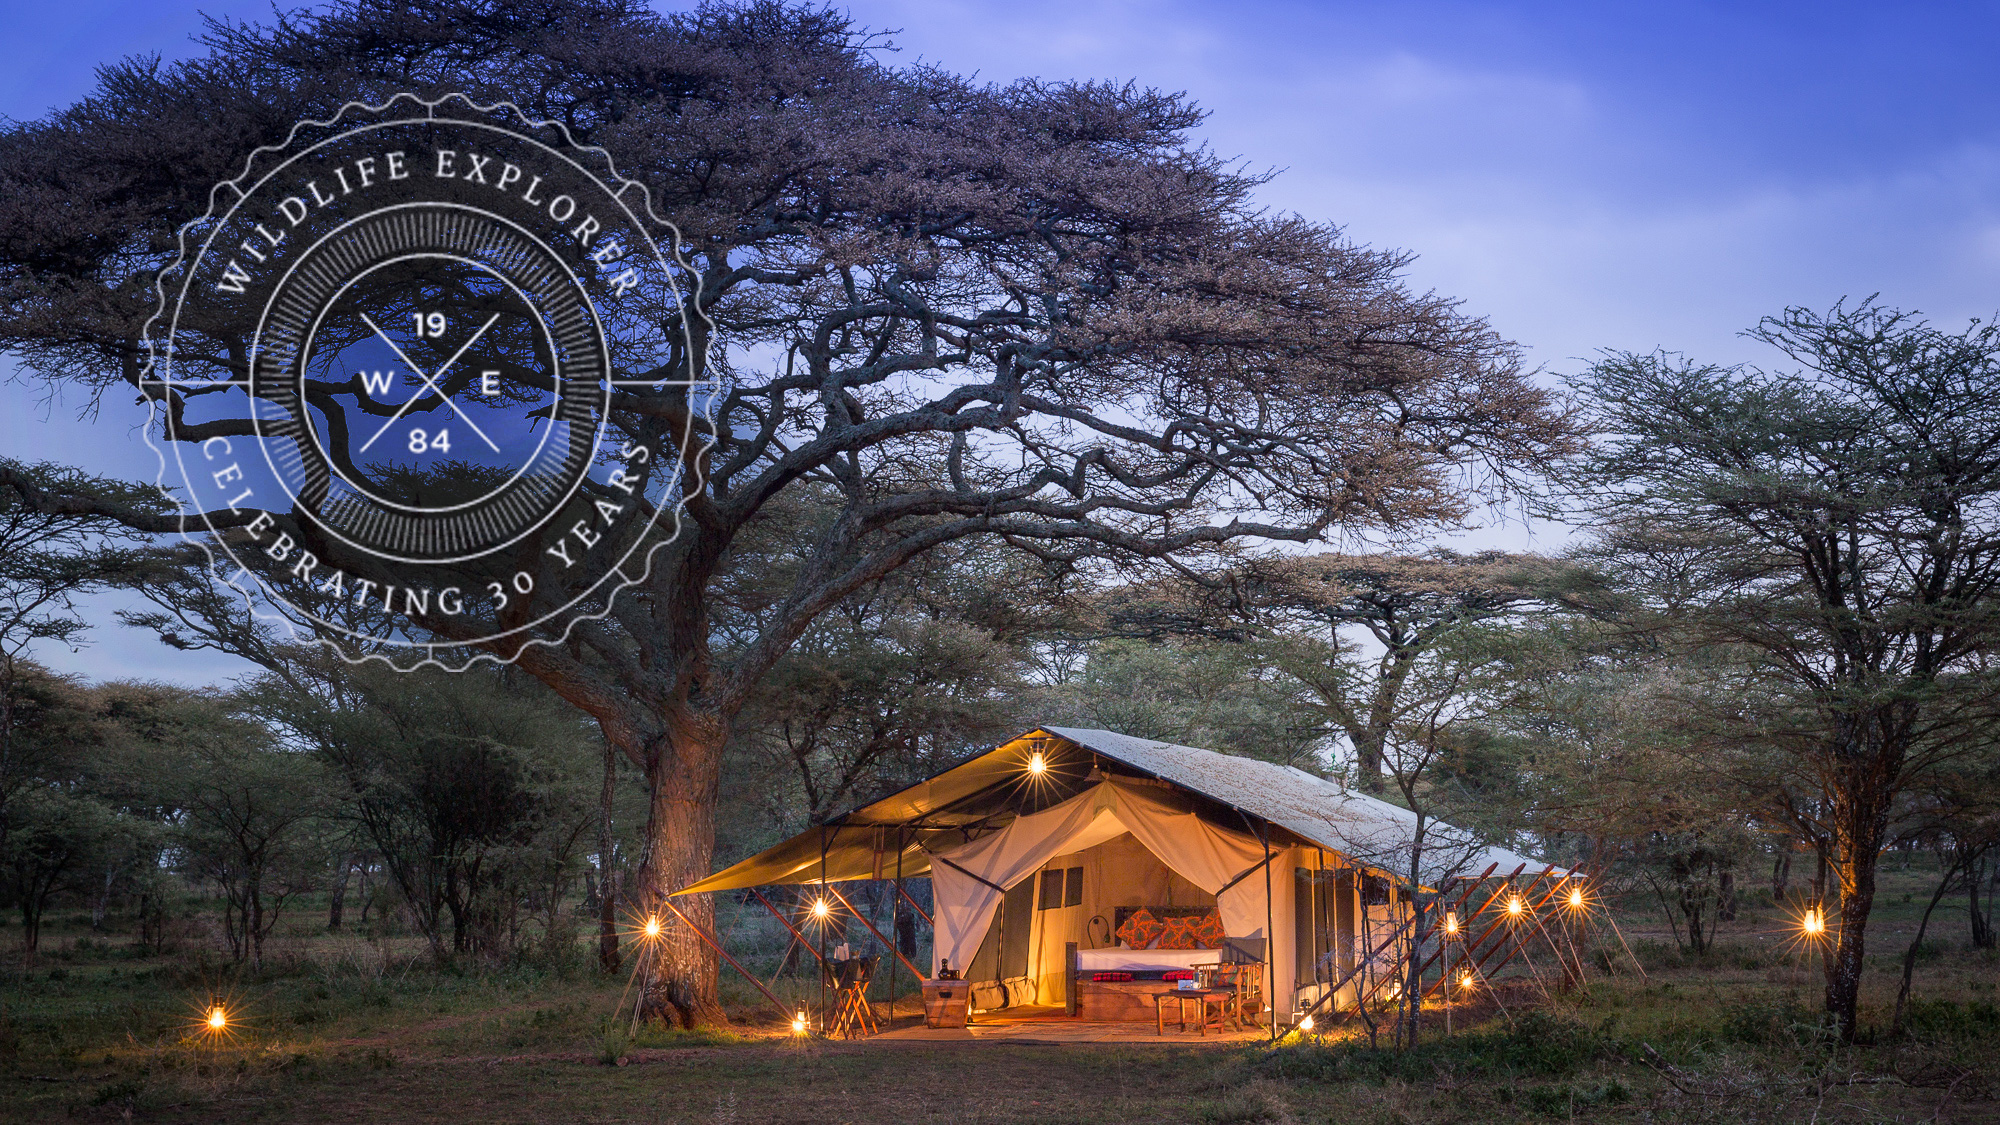 Wildlife Explorer | Dulana Camp | Serengeti